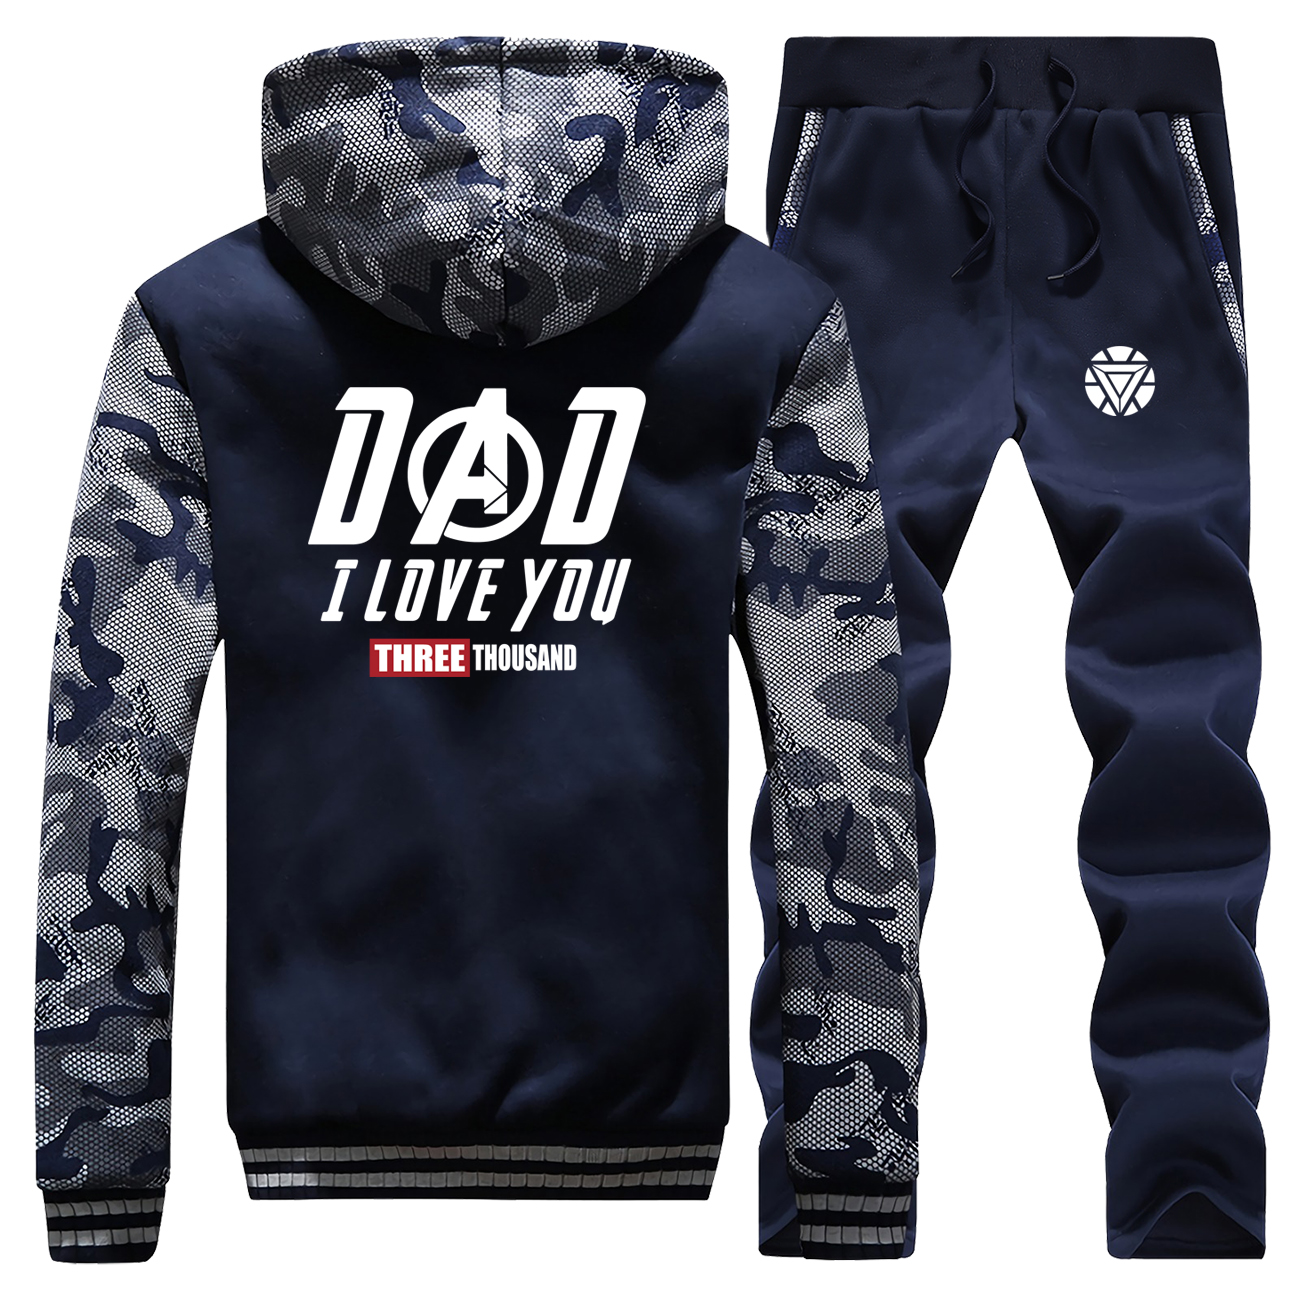 I Love You Three Thousand Winter Hot Sale 2019 The Avngers Sportswear Camouflage Coat Thick Suit Warm Jackets+Pants 2 Piece Set